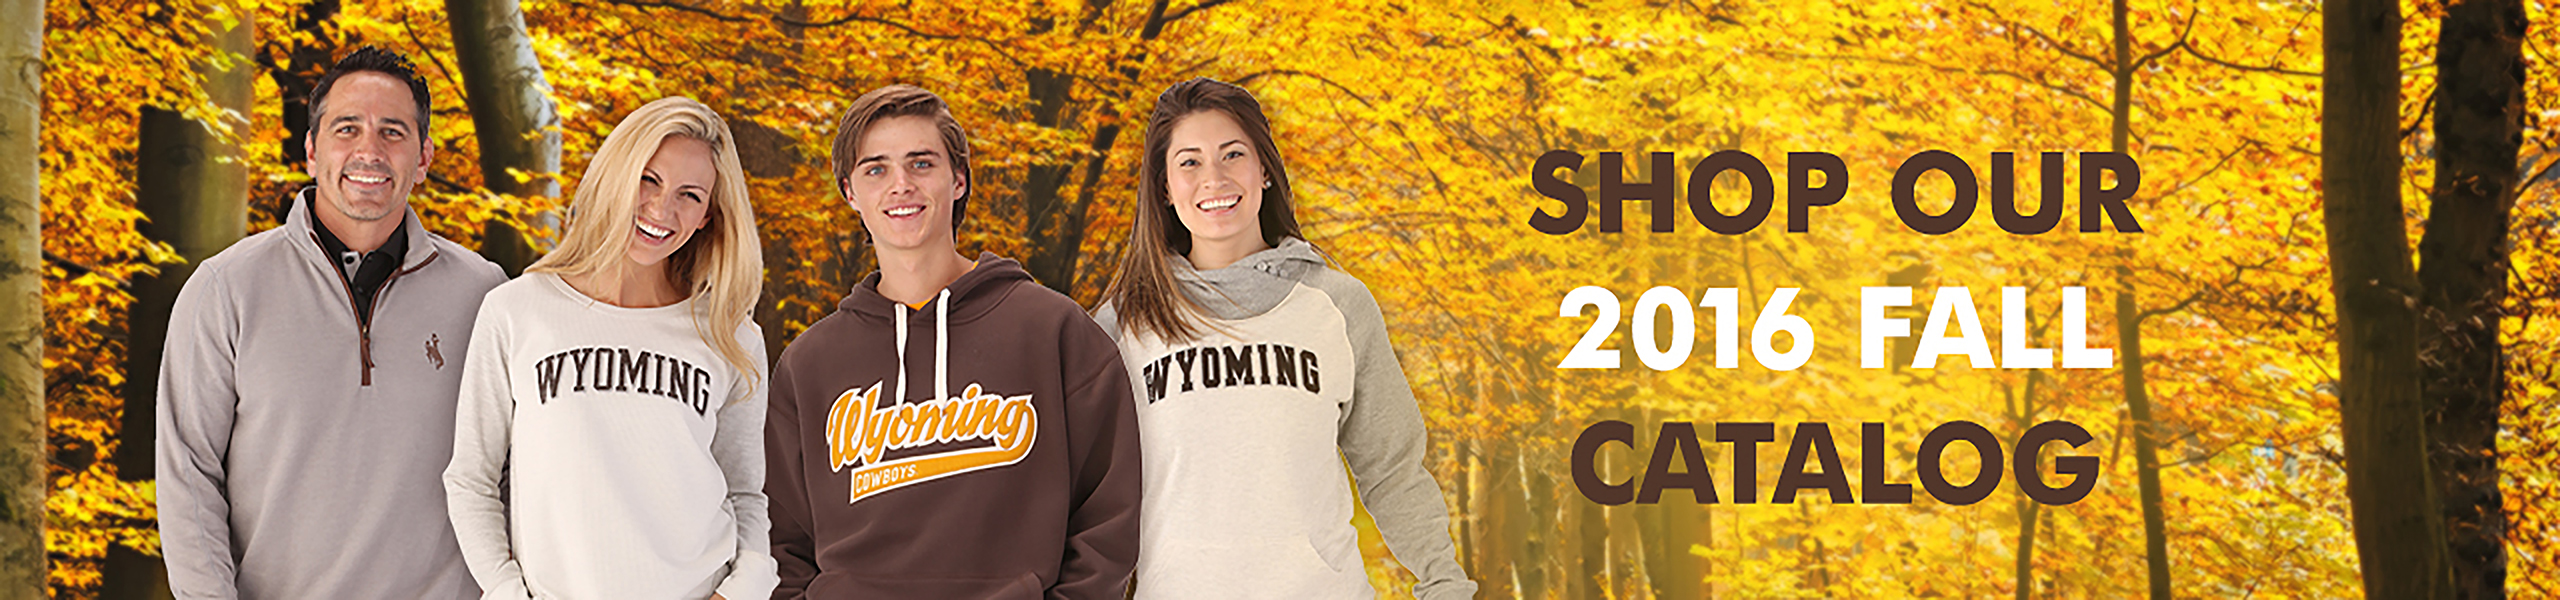 Check out our new Fall Catalog which is filled to the brim with new UW apparel!